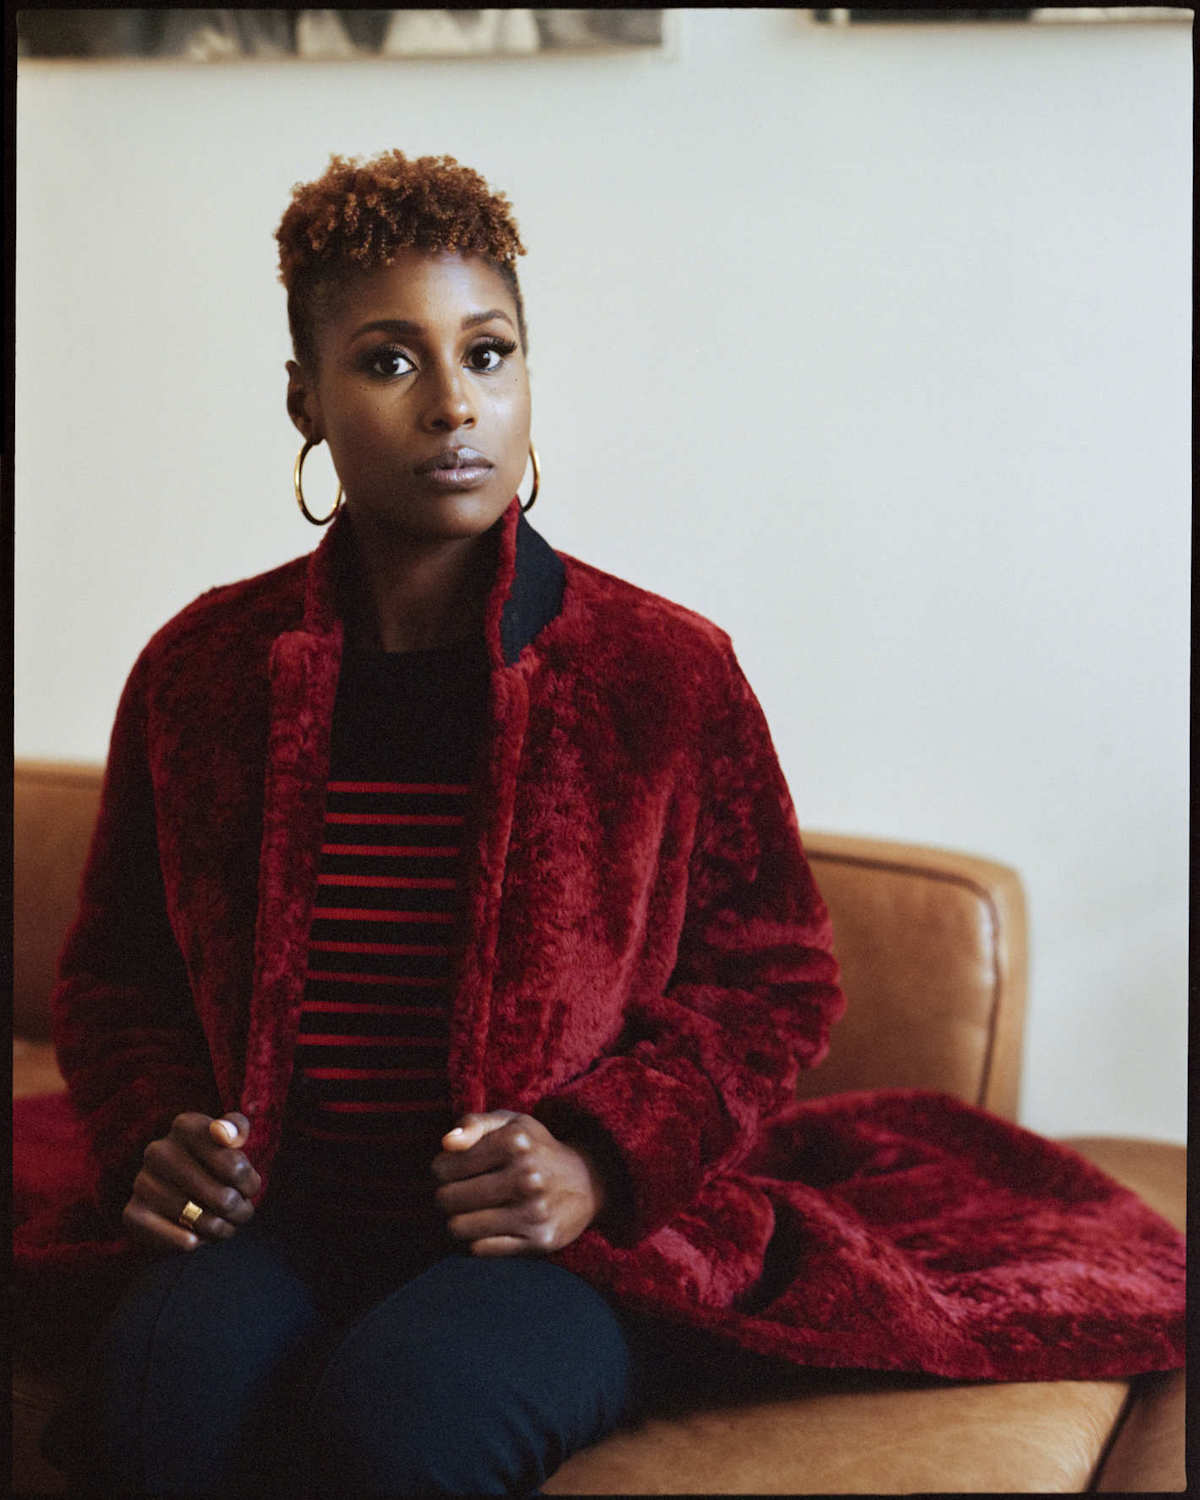 Issa Rae, Insecure, Awkward Black Girl, African American Cinema, Black Actress, KOLUMN Magazine, KOLUMN